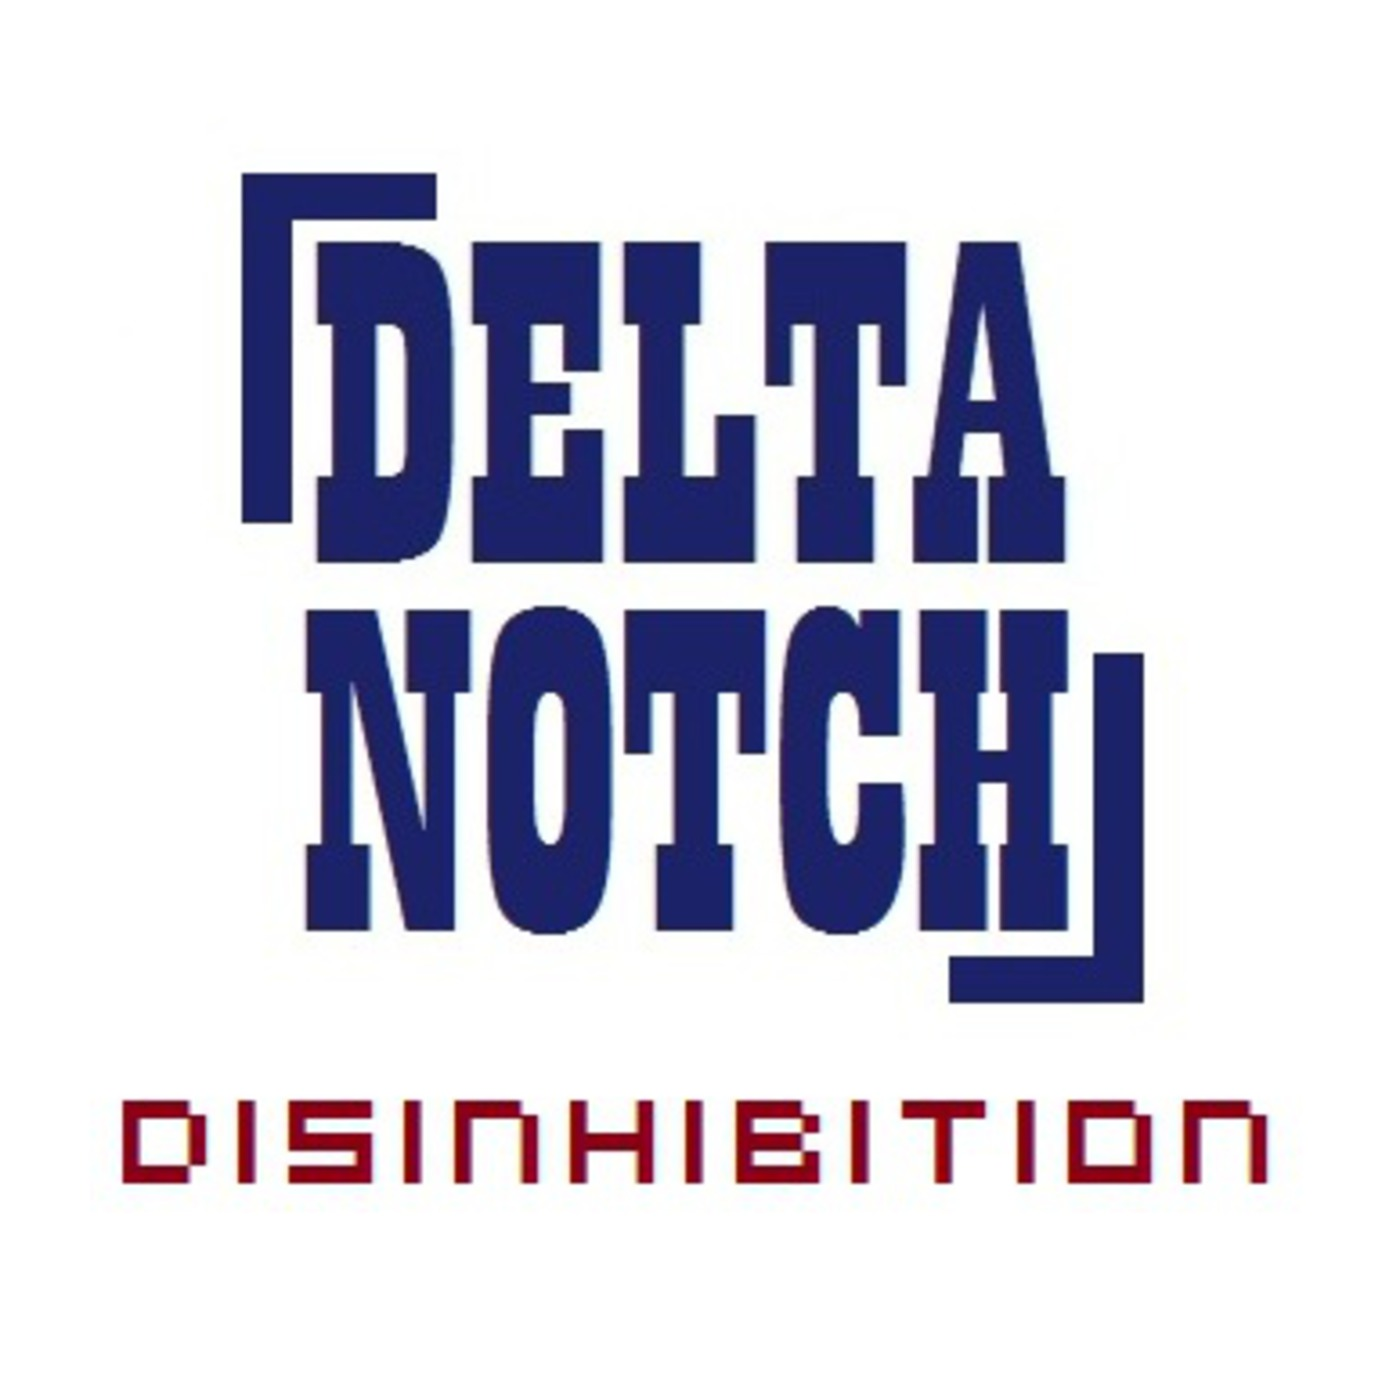 Disinhibition with Delta-Notch